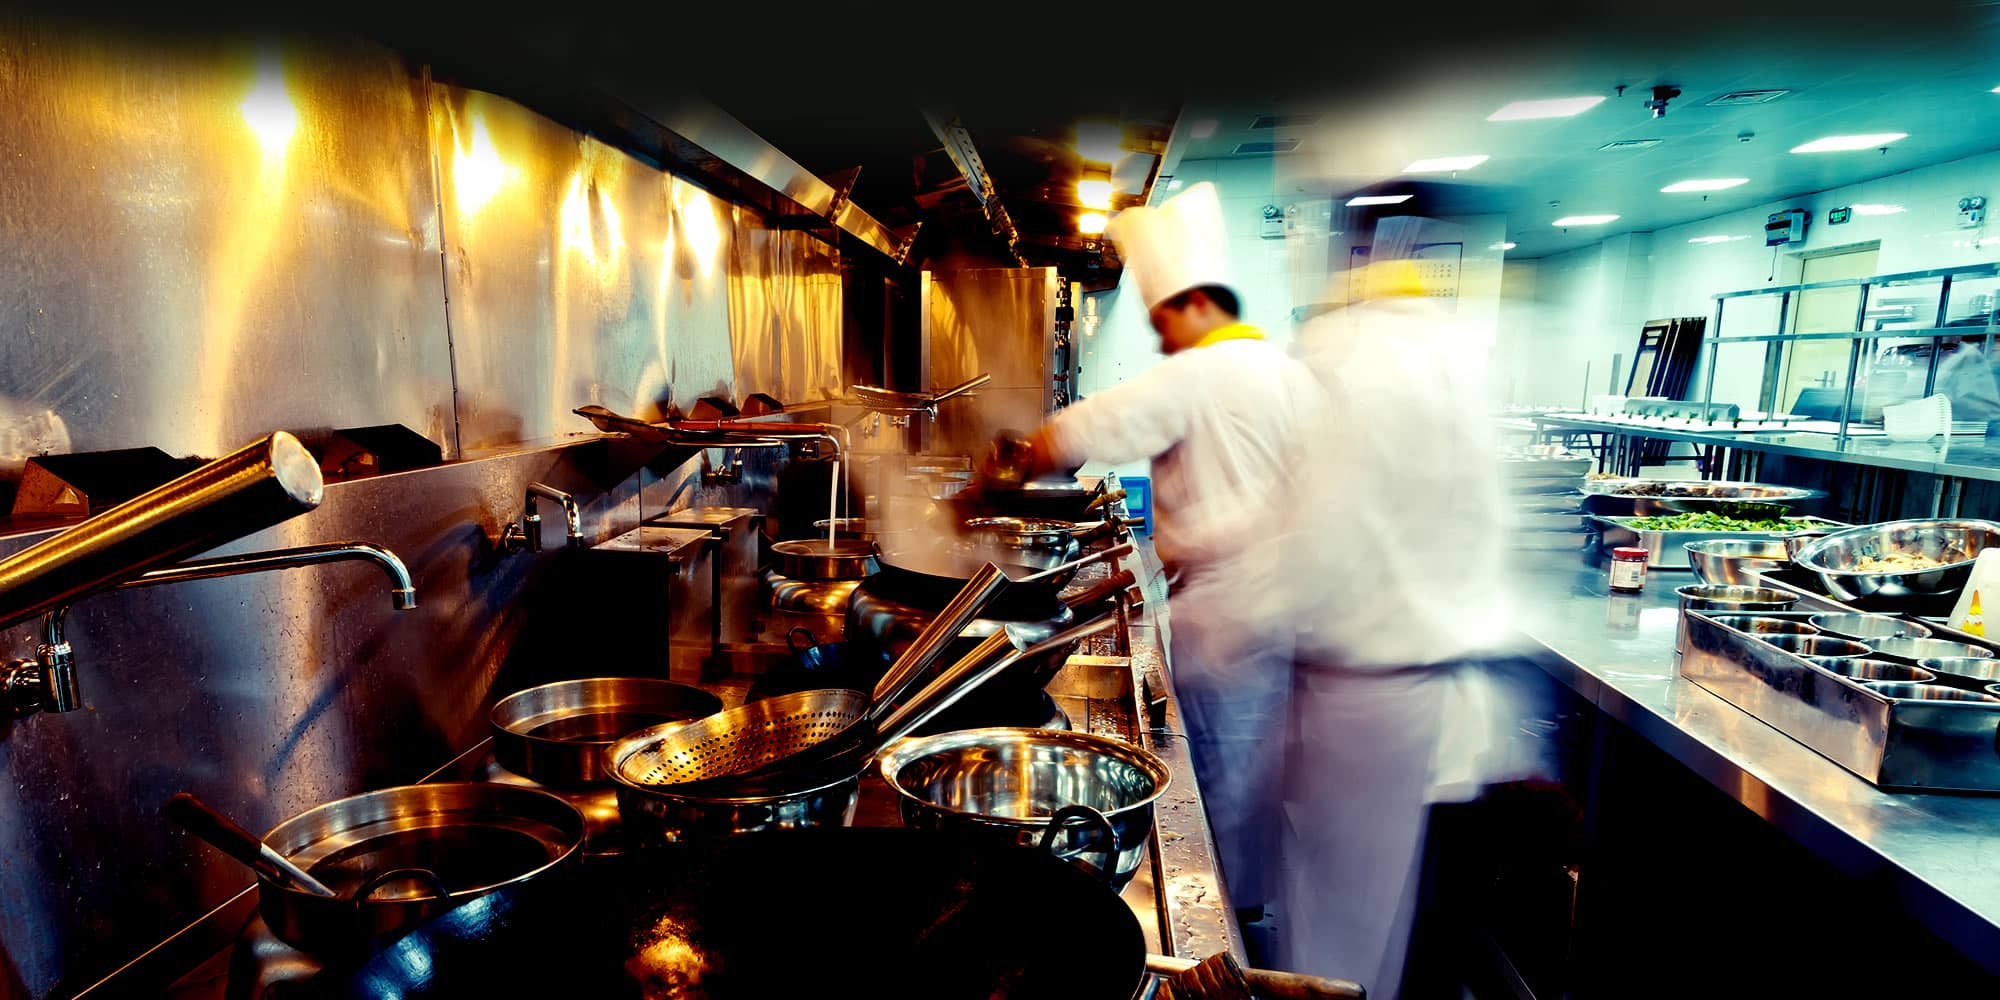 Restaurant & Store Accidents